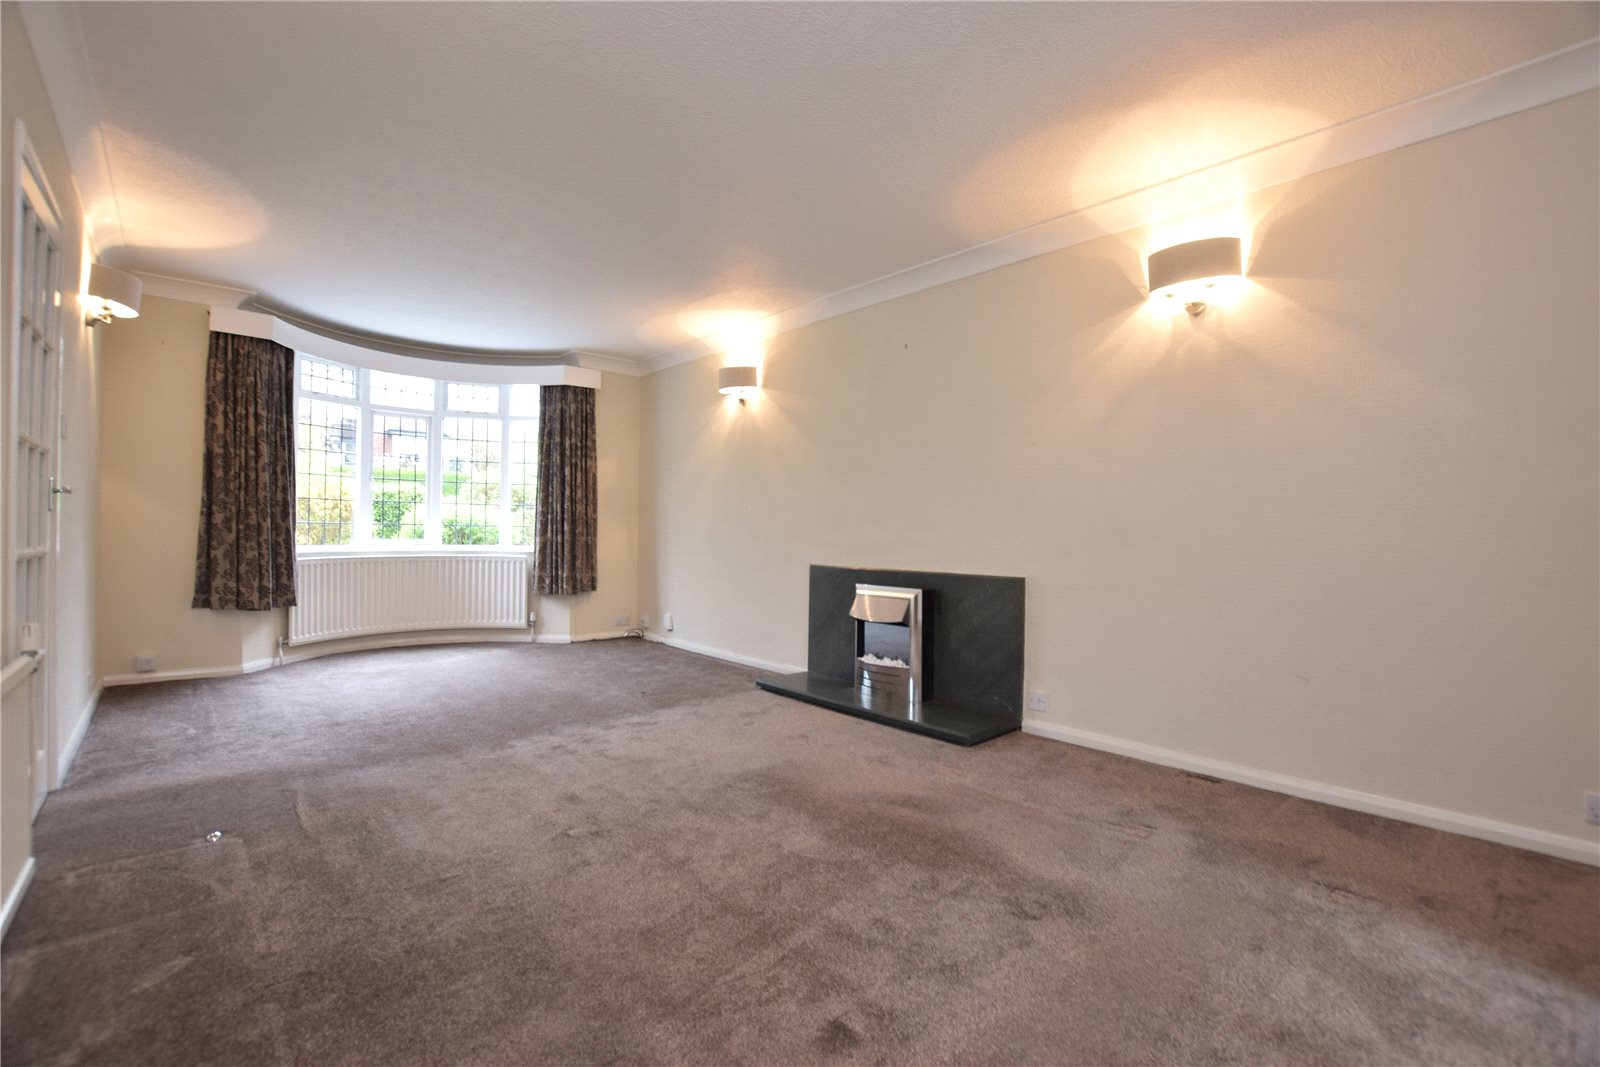 property to let in roundhay, living room